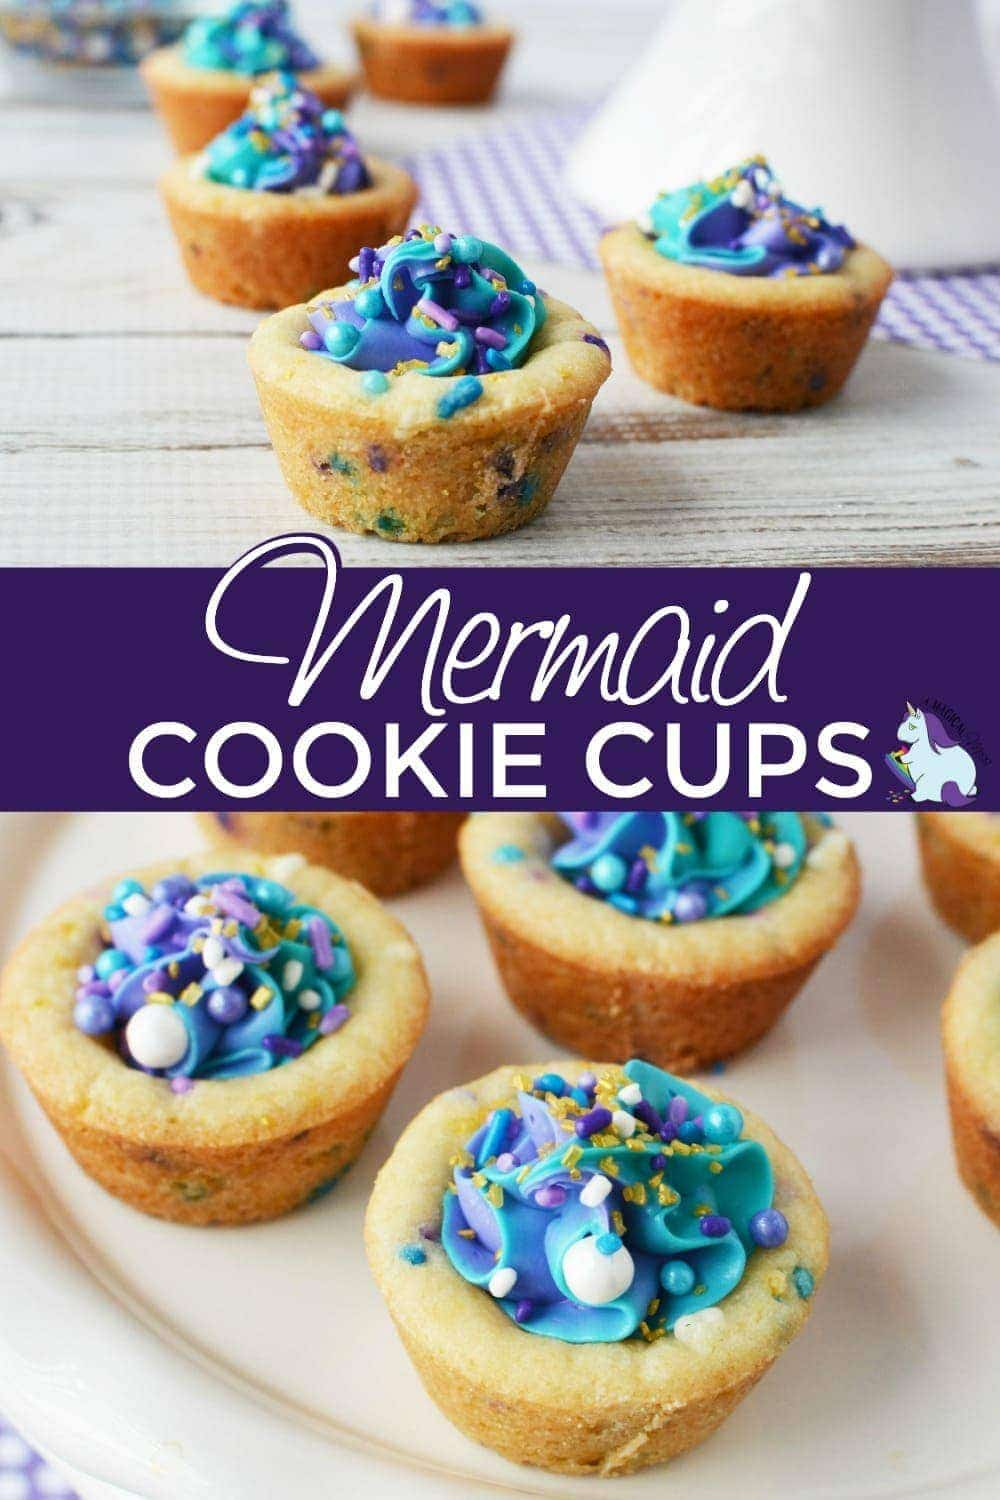 Mermaid cookies cups on display.